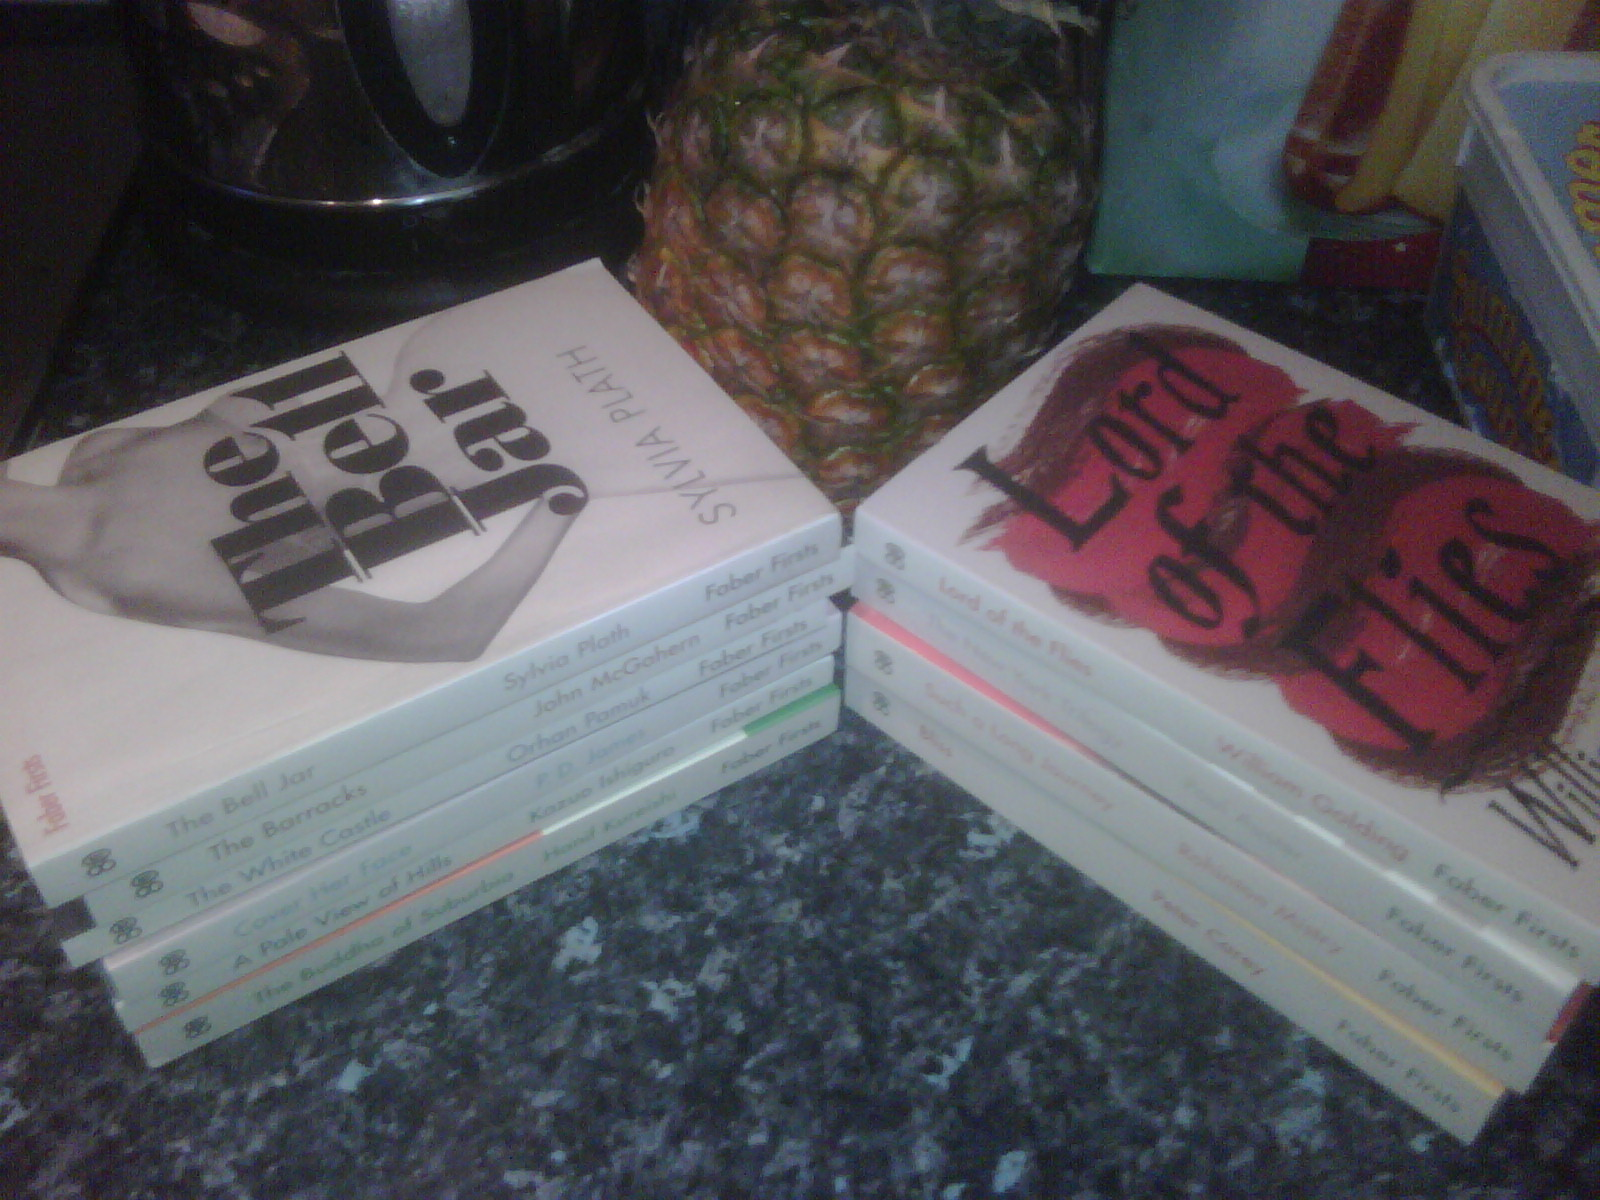 The Faber Firsts (And A Pineapple - I Opened Them Hurridly In My Kitchen - Apologies)